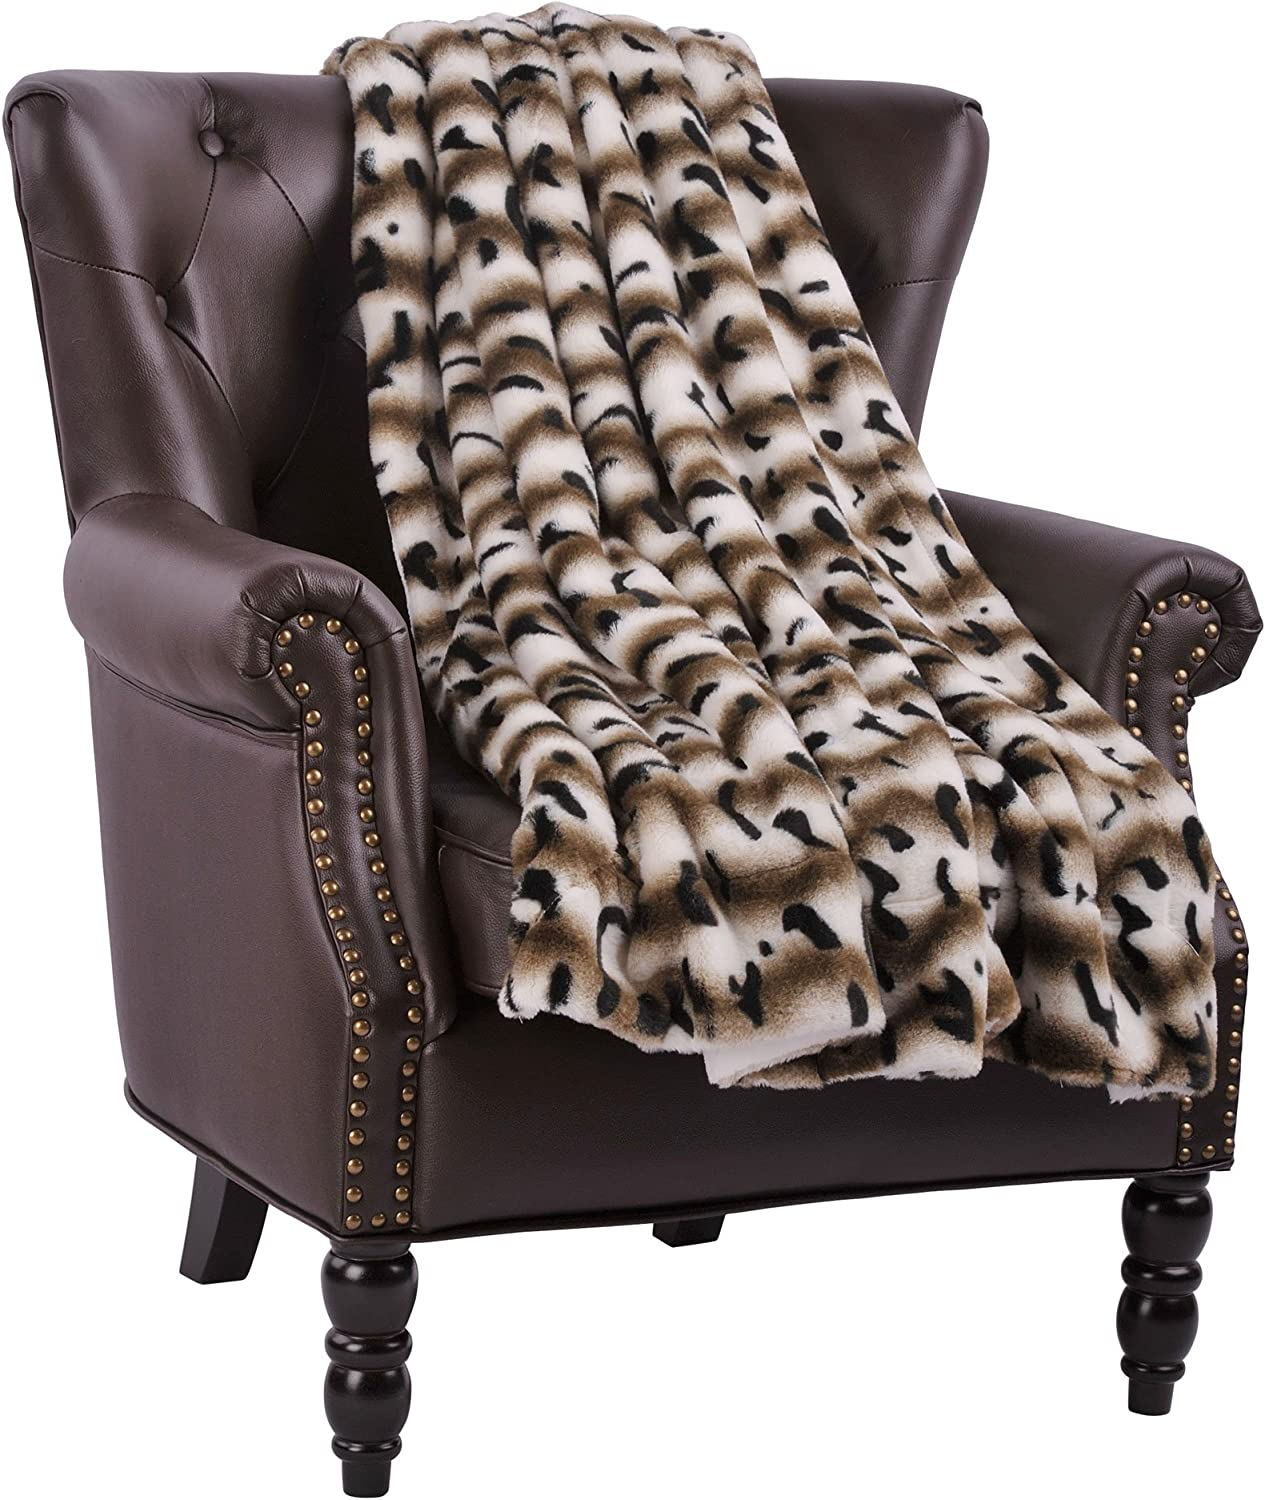 Home Soft Things Throw Blanket 50